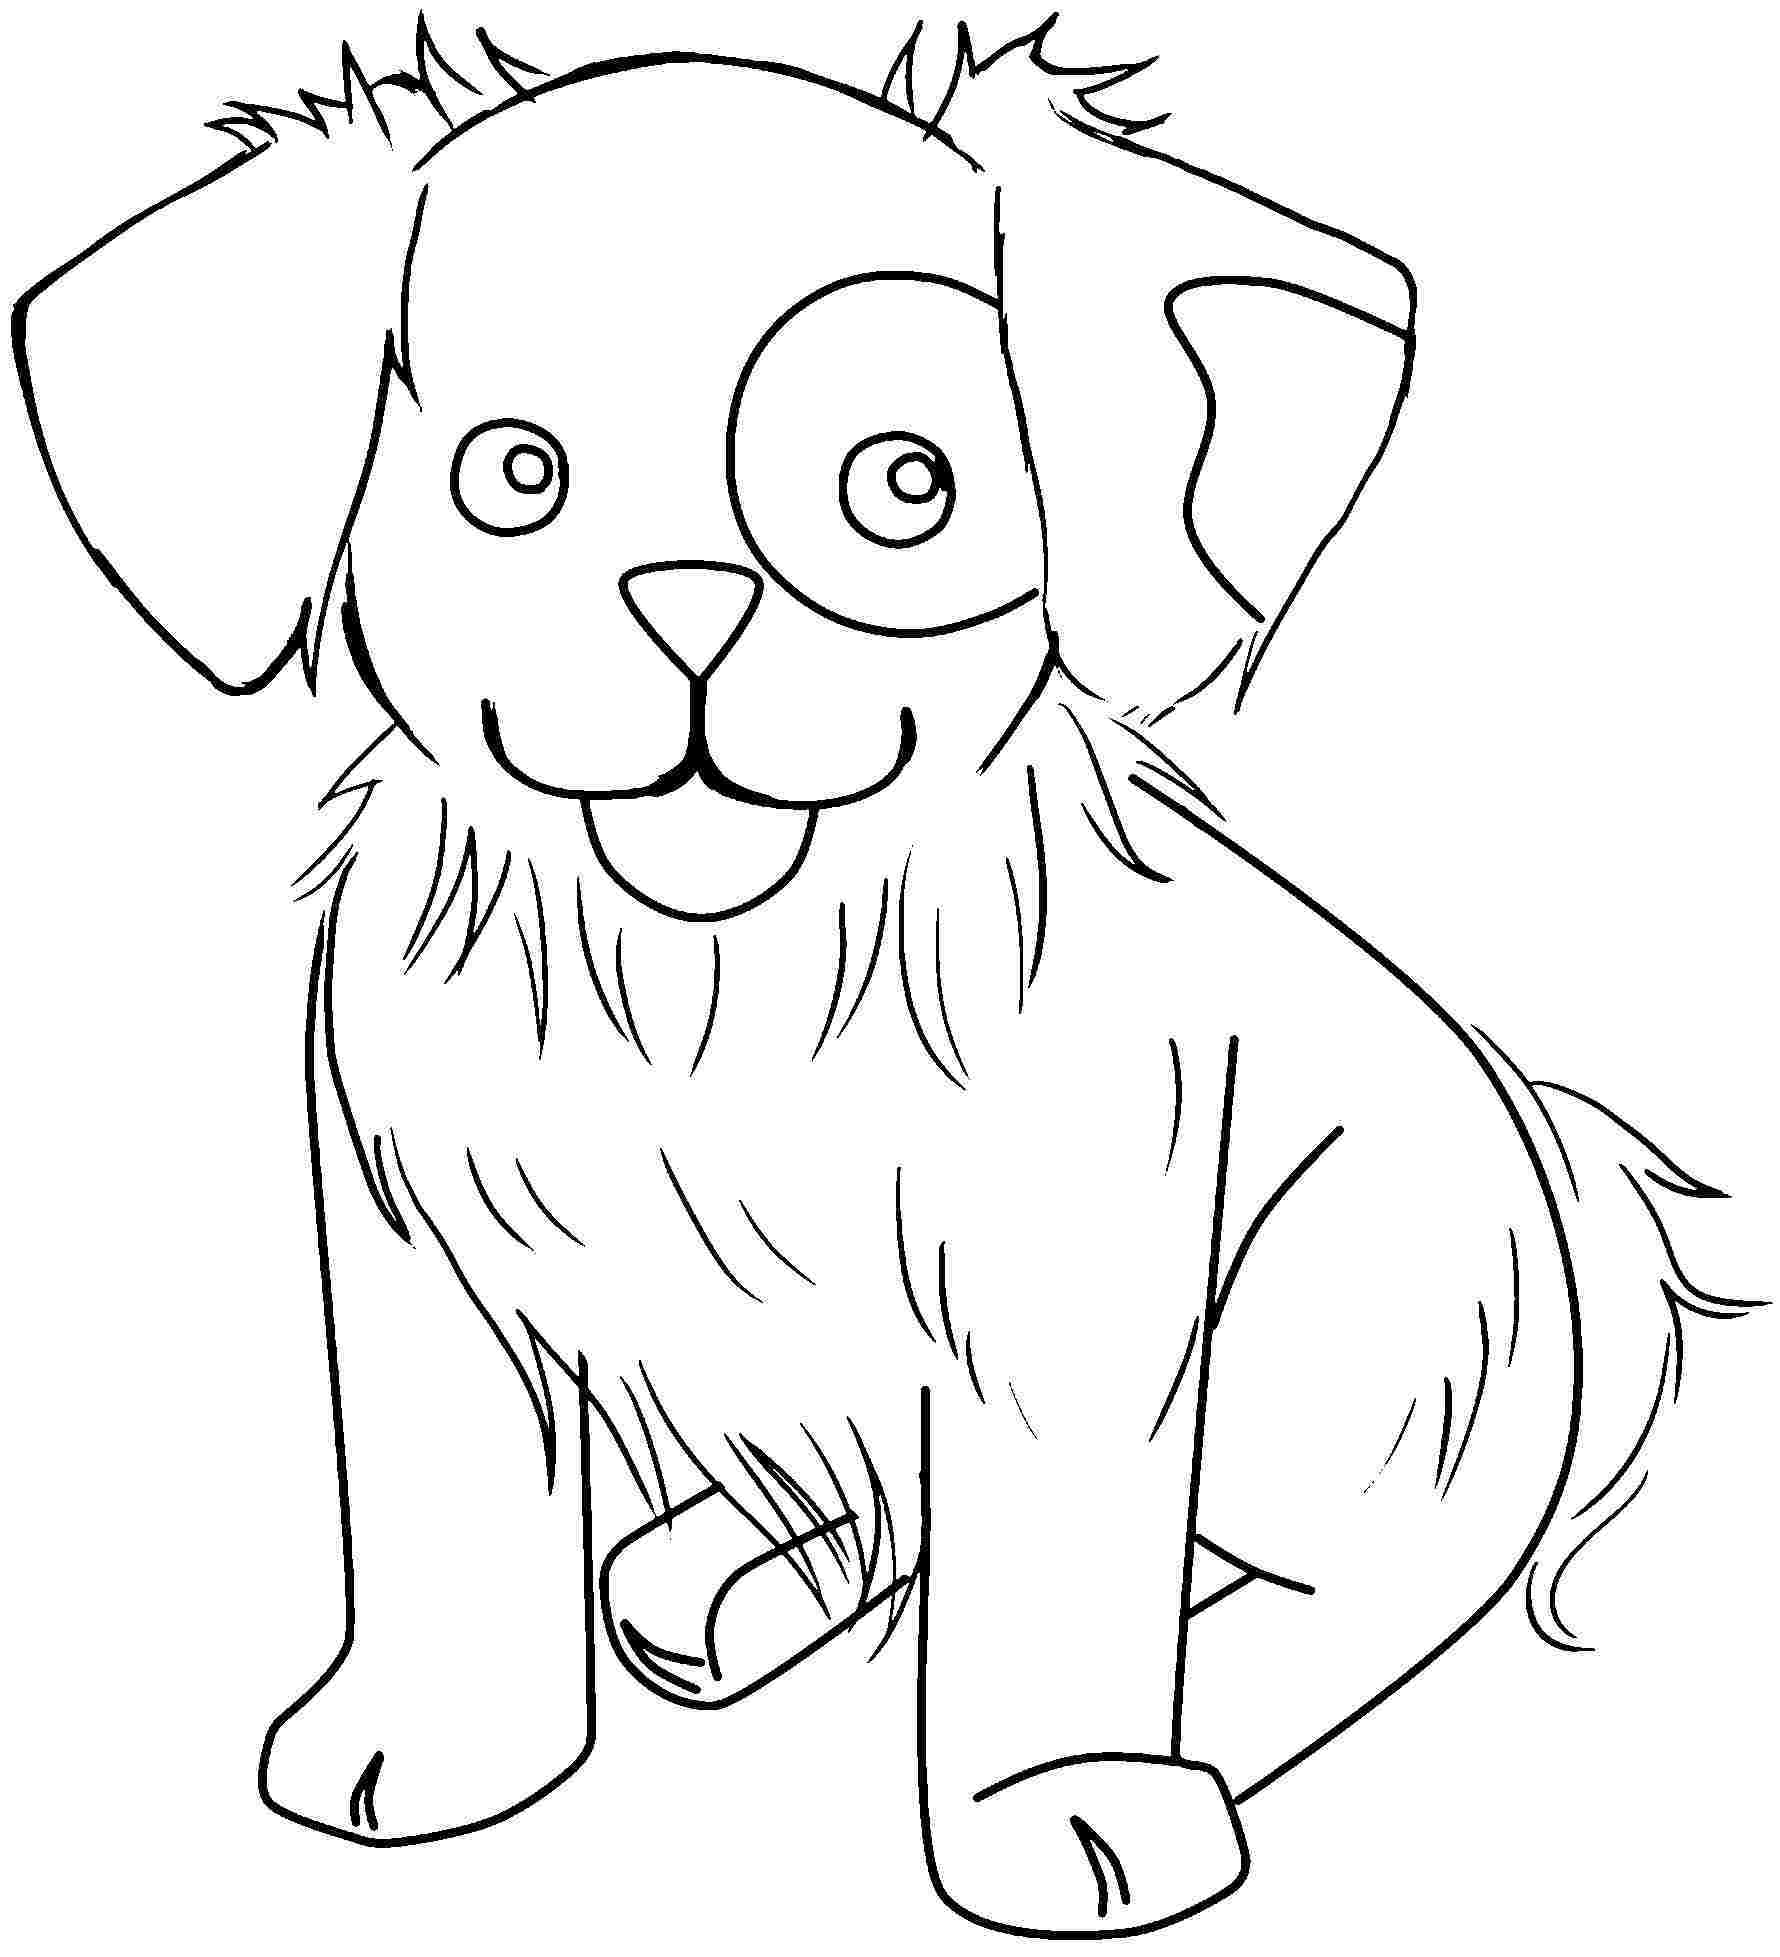 1780x1957 Awesome Online Printable Animal Coloring Pages On Sheets